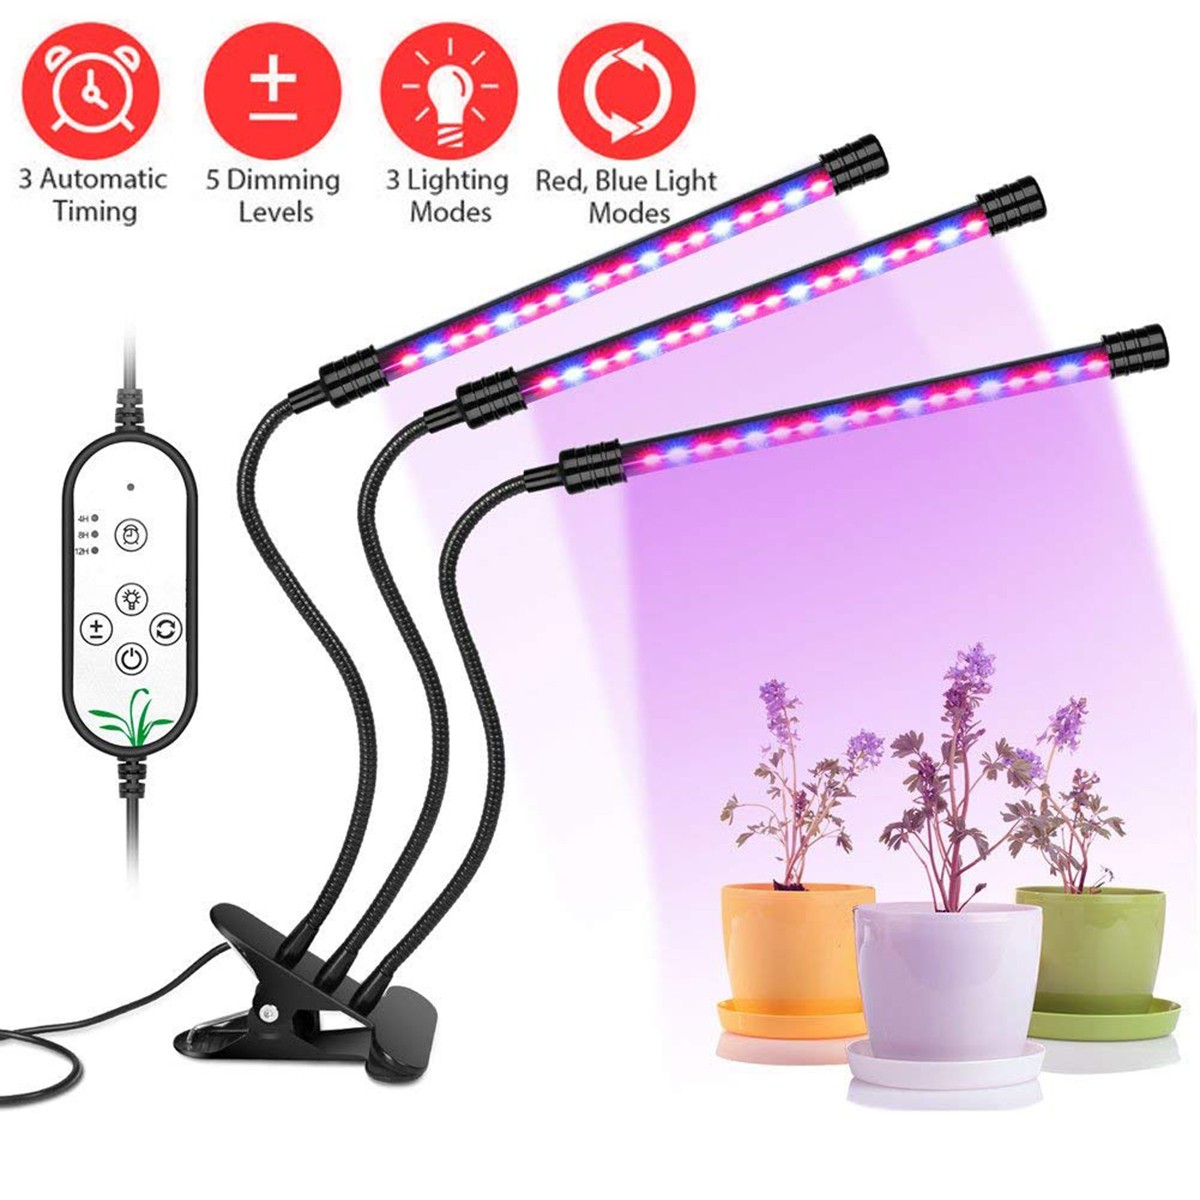 Wachstumslampe Led Pflanzenlicht Pflanzenlampe Led Wachstumslampe Grow Light Dimmbar